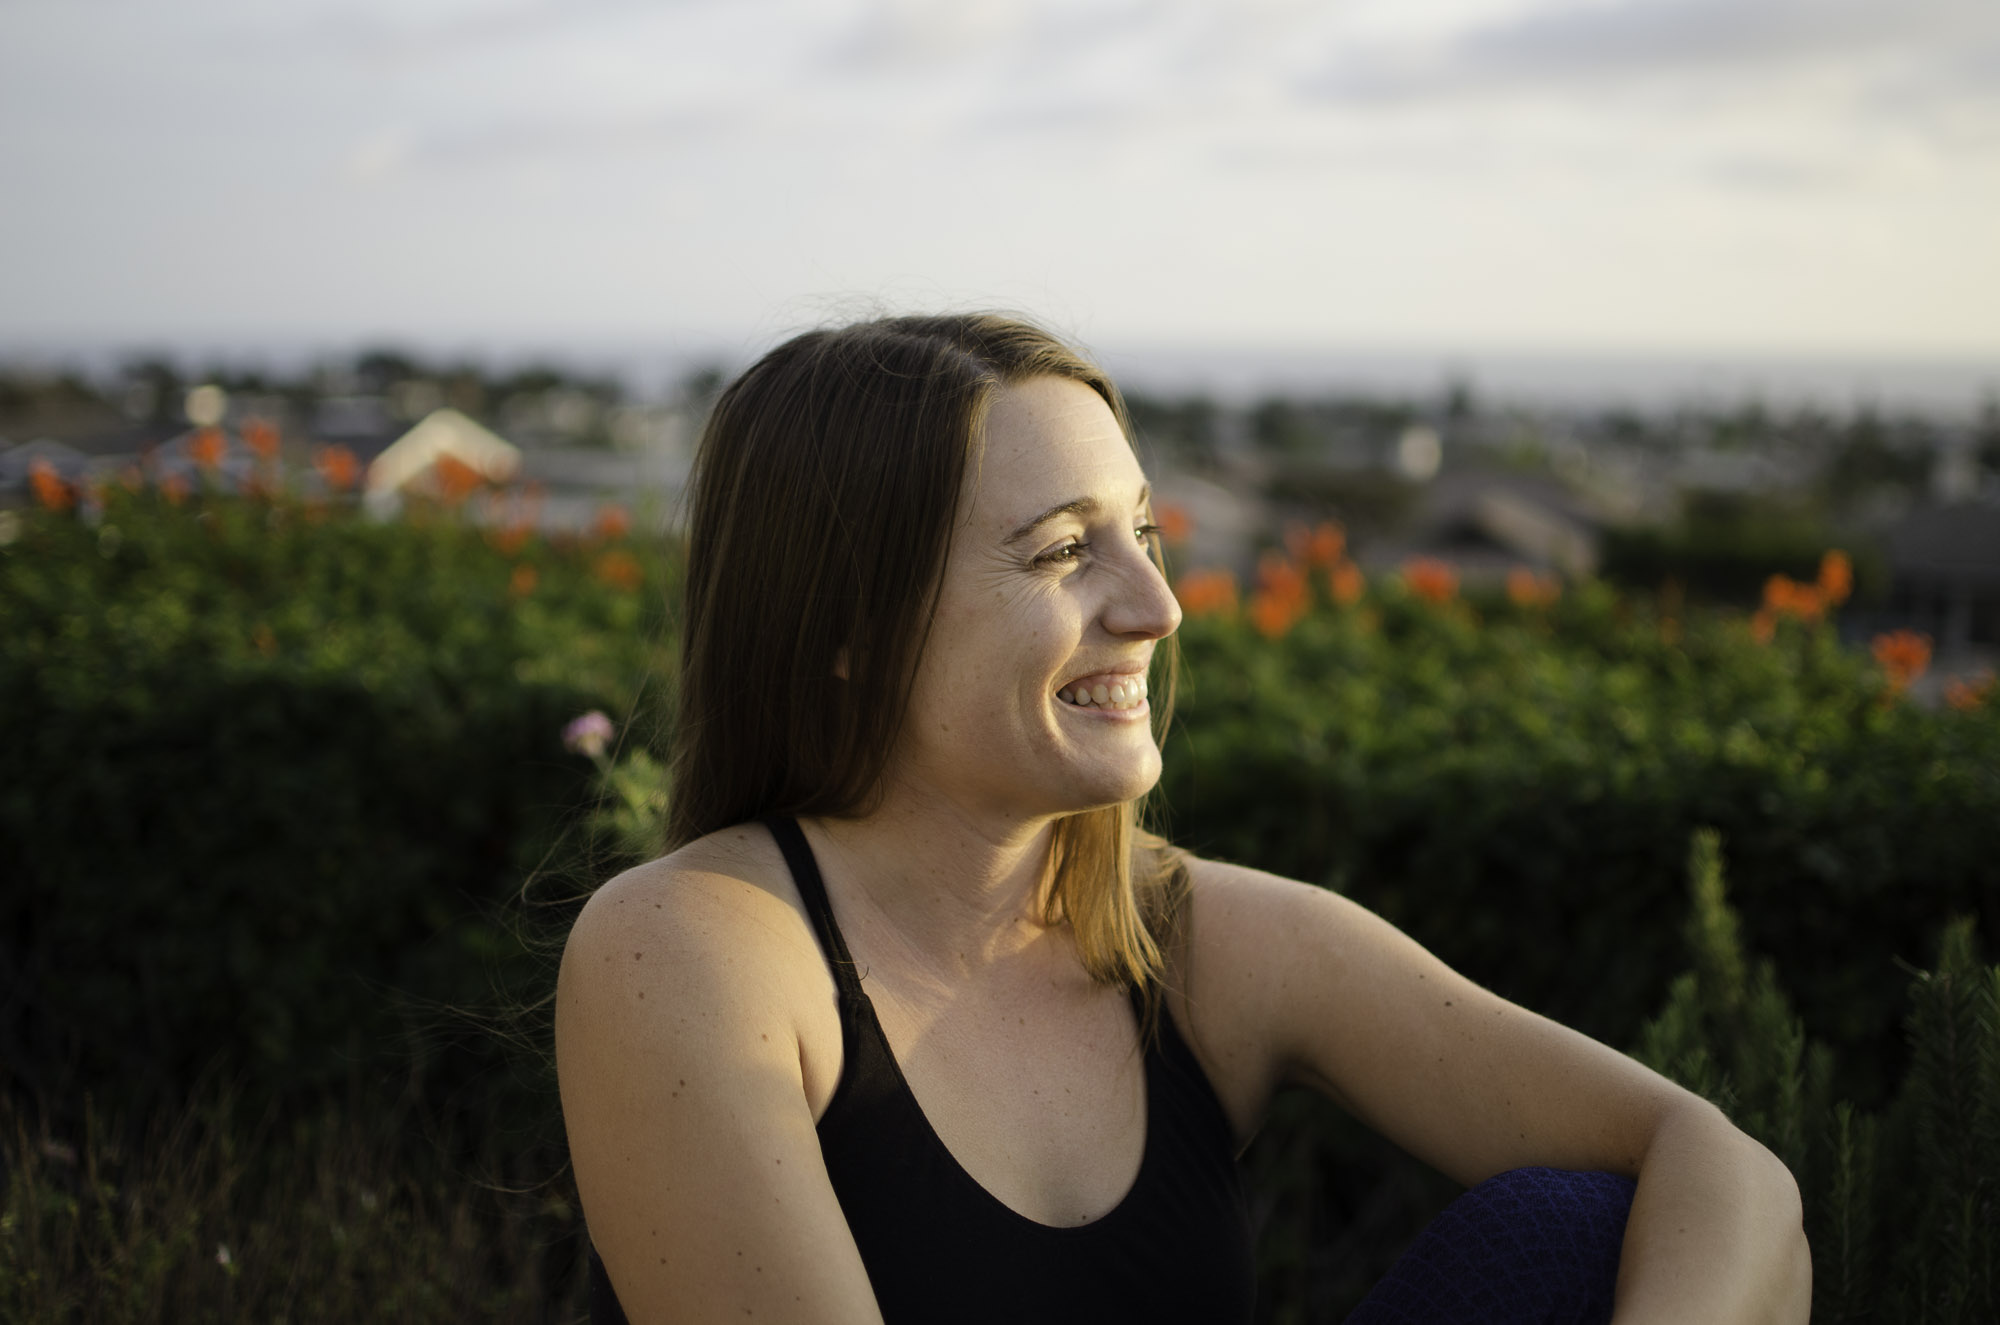 Elizabeth Ryan, Private Yoga Lessons in Santa Cruz, CA